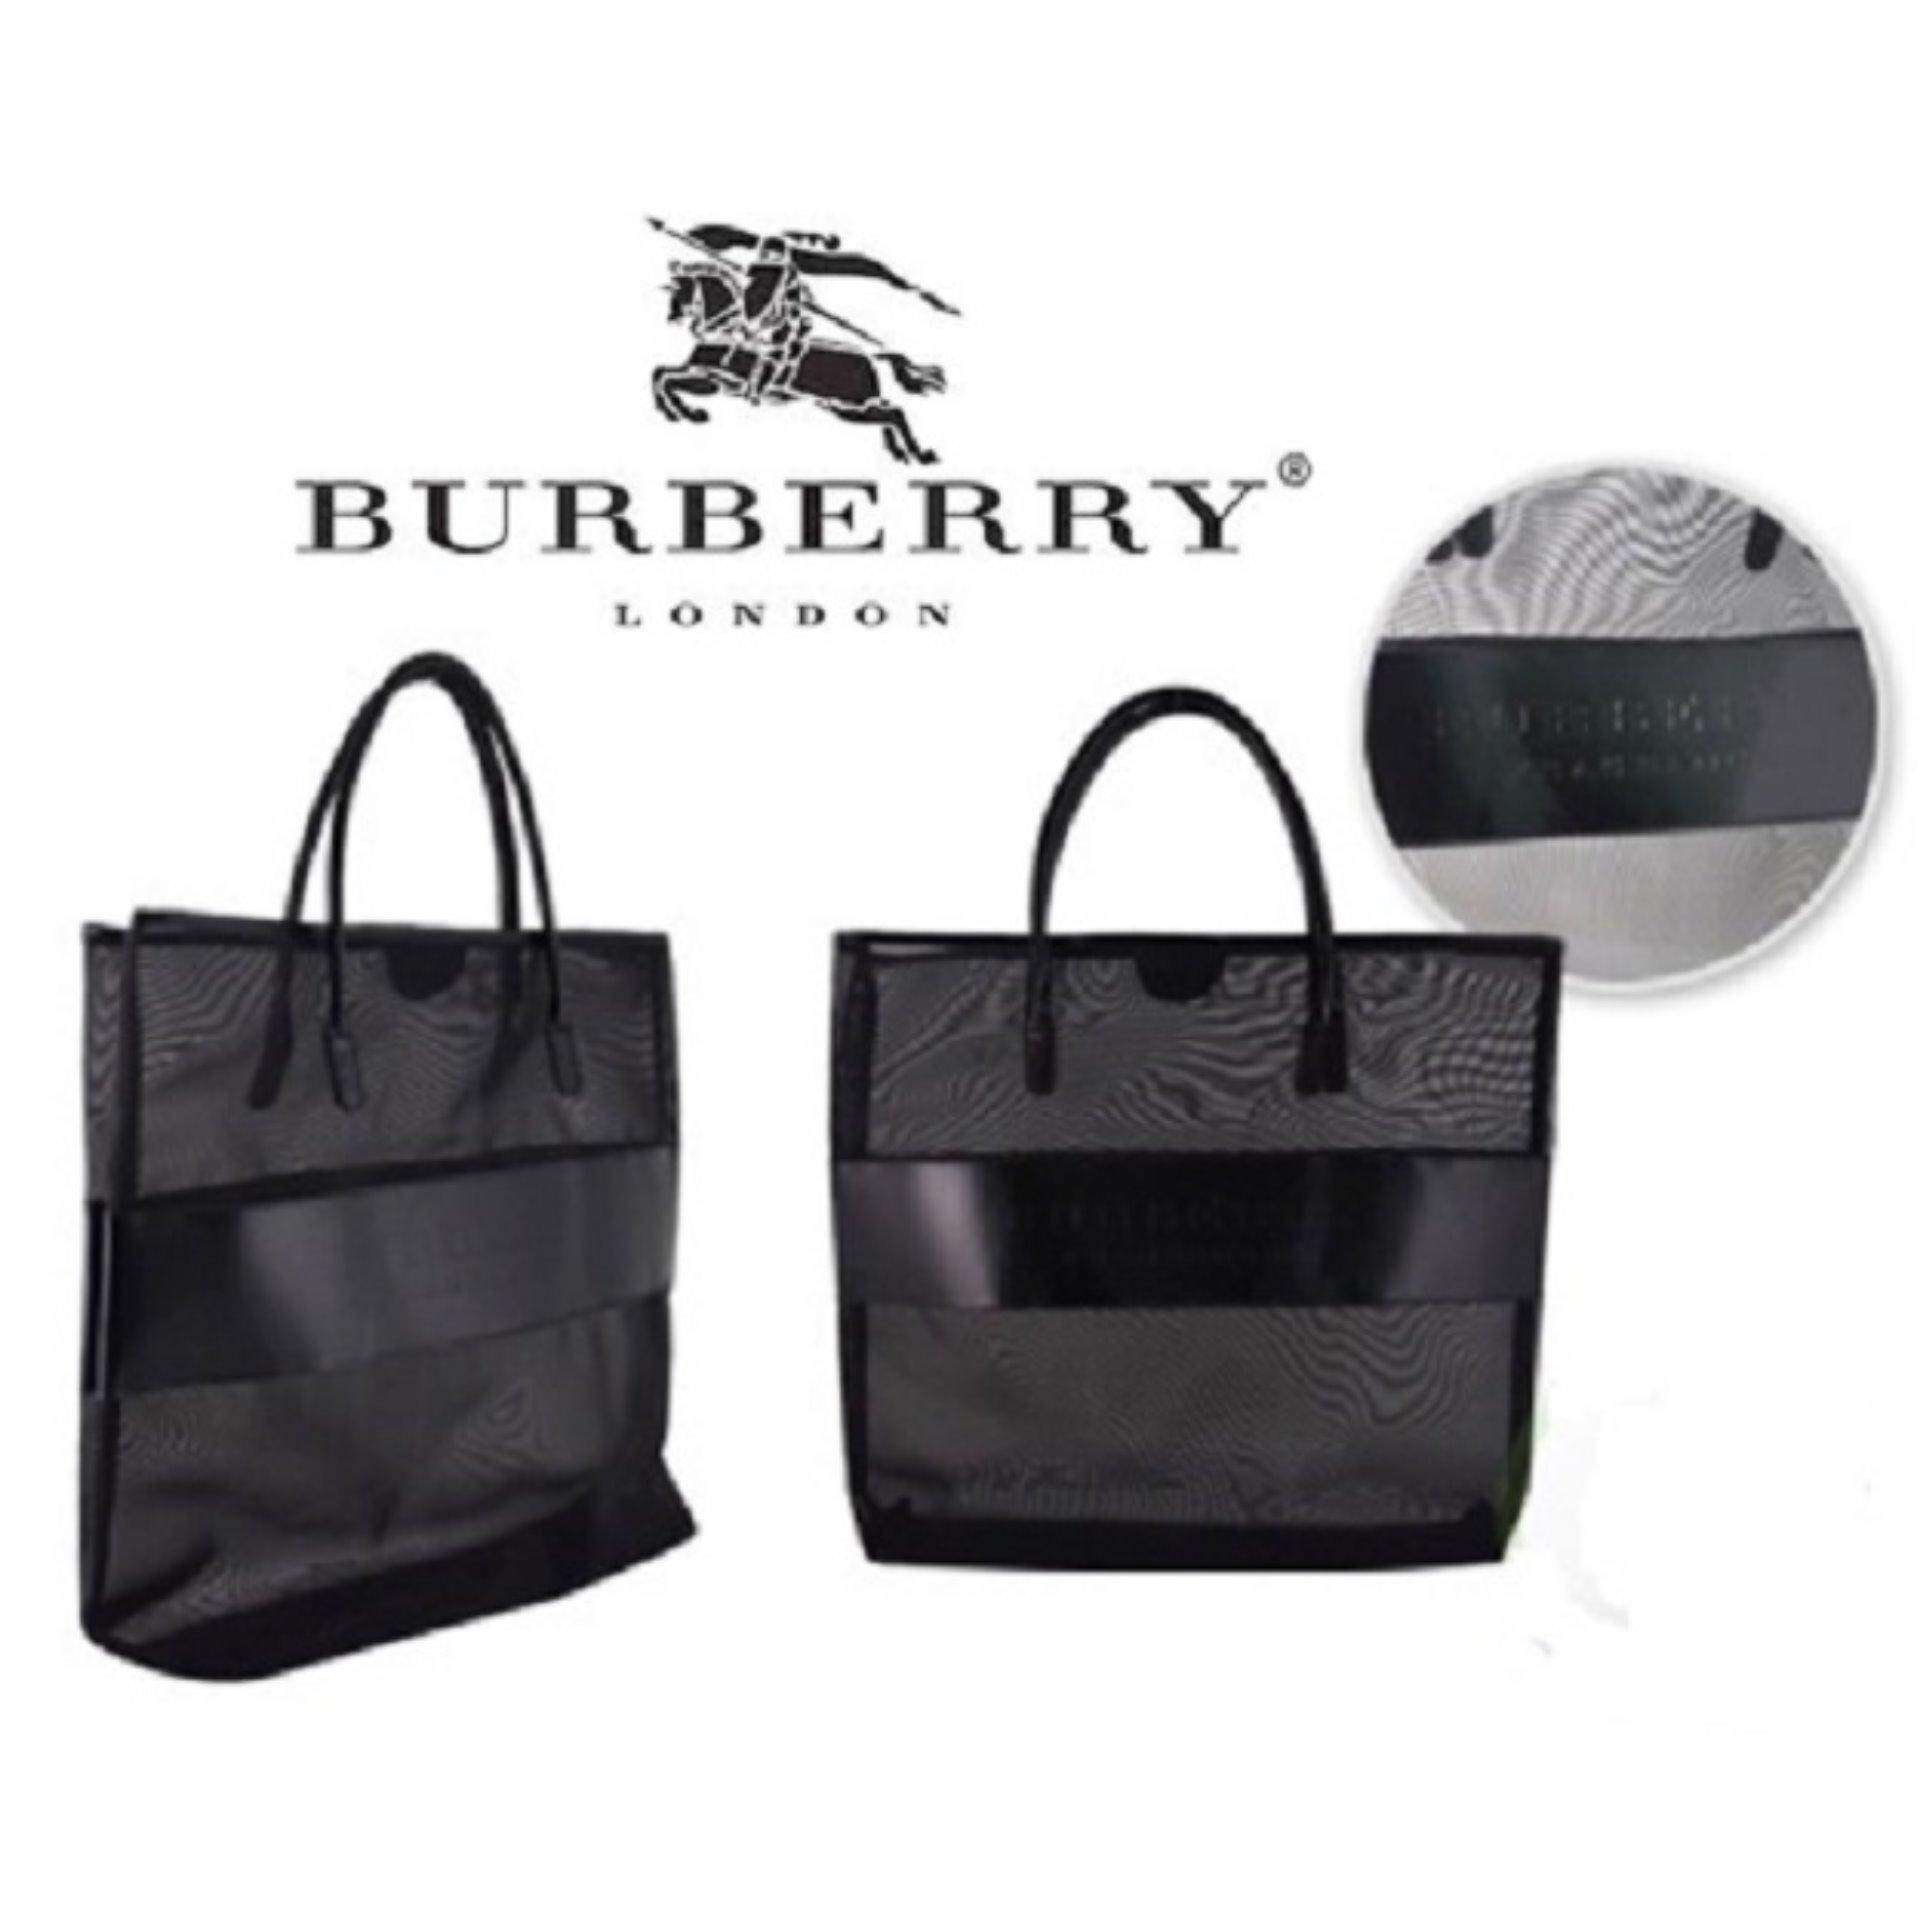 7c256ecfc5bd Burberry Mesh Tote Bag- Clearance Sale Below Cost